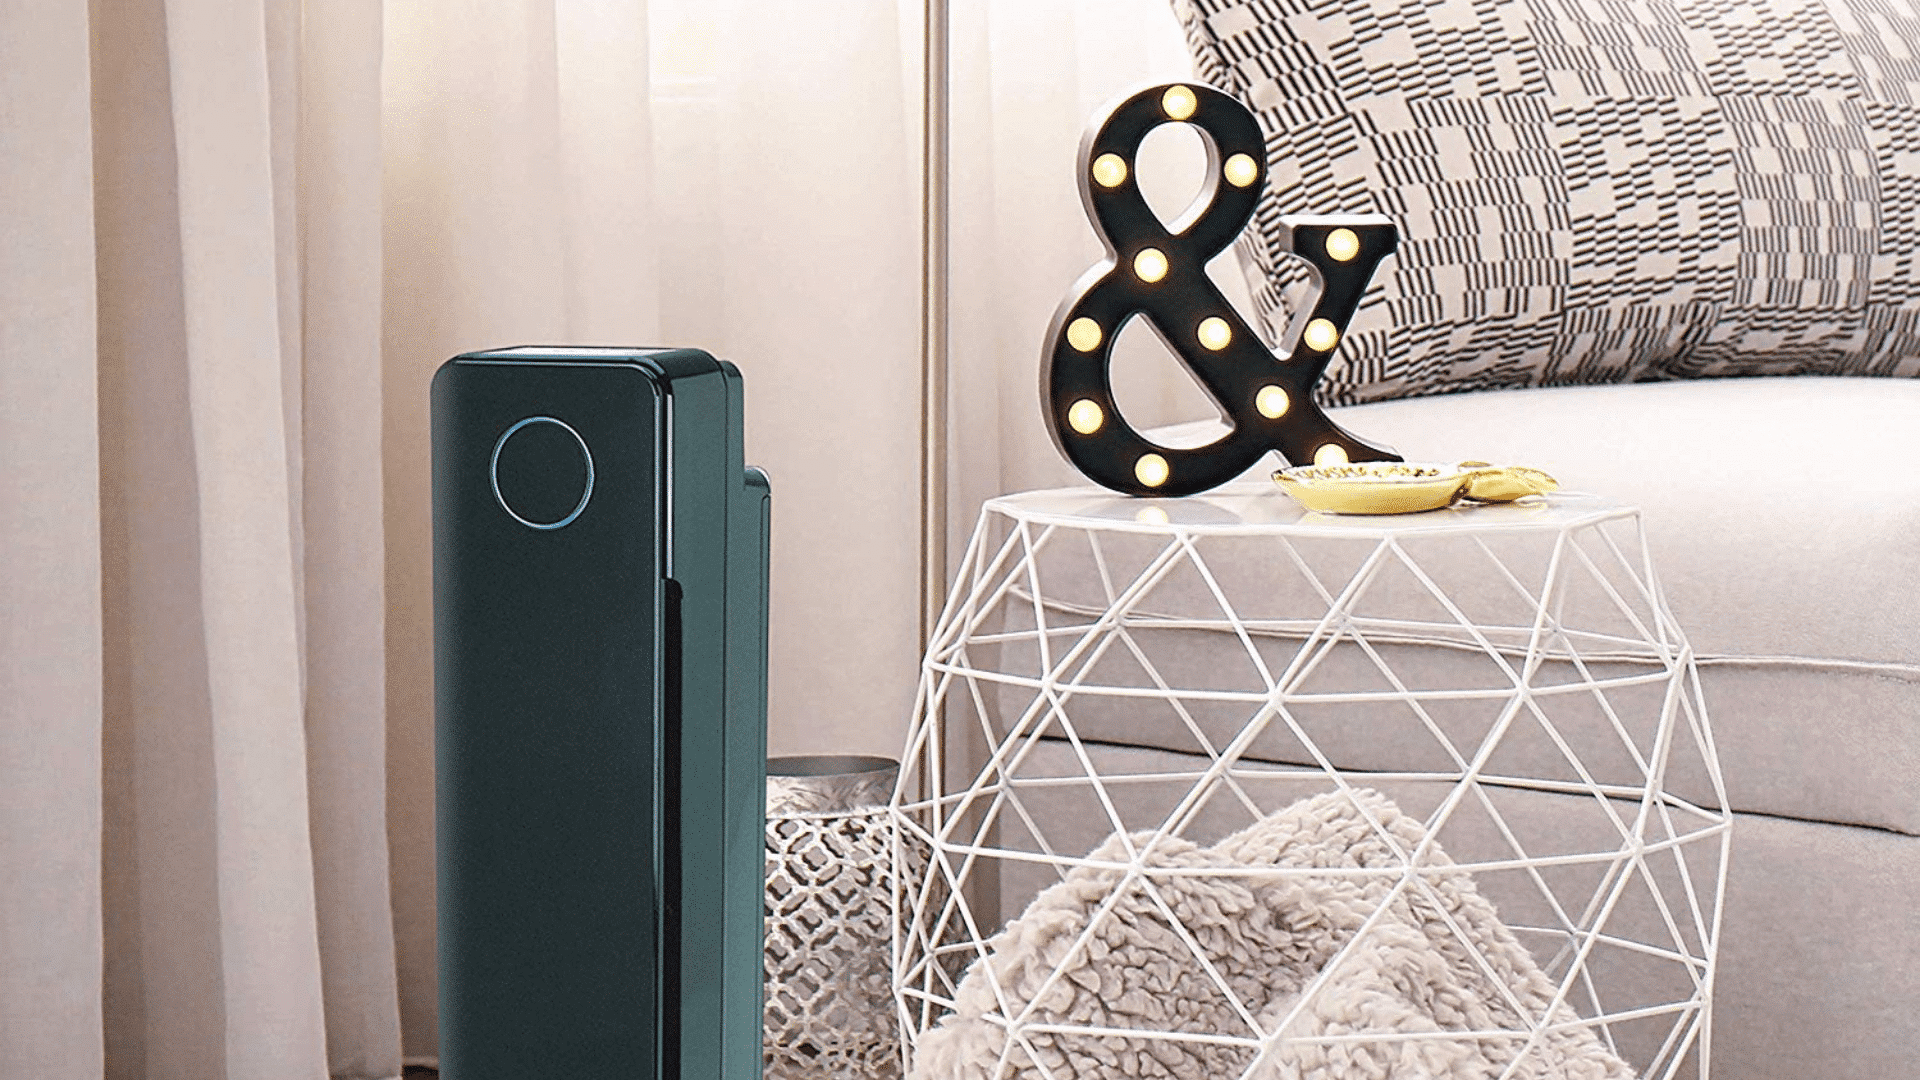 Image of GermGuardian AC5350B staged beside geometric night stand and & sign decor